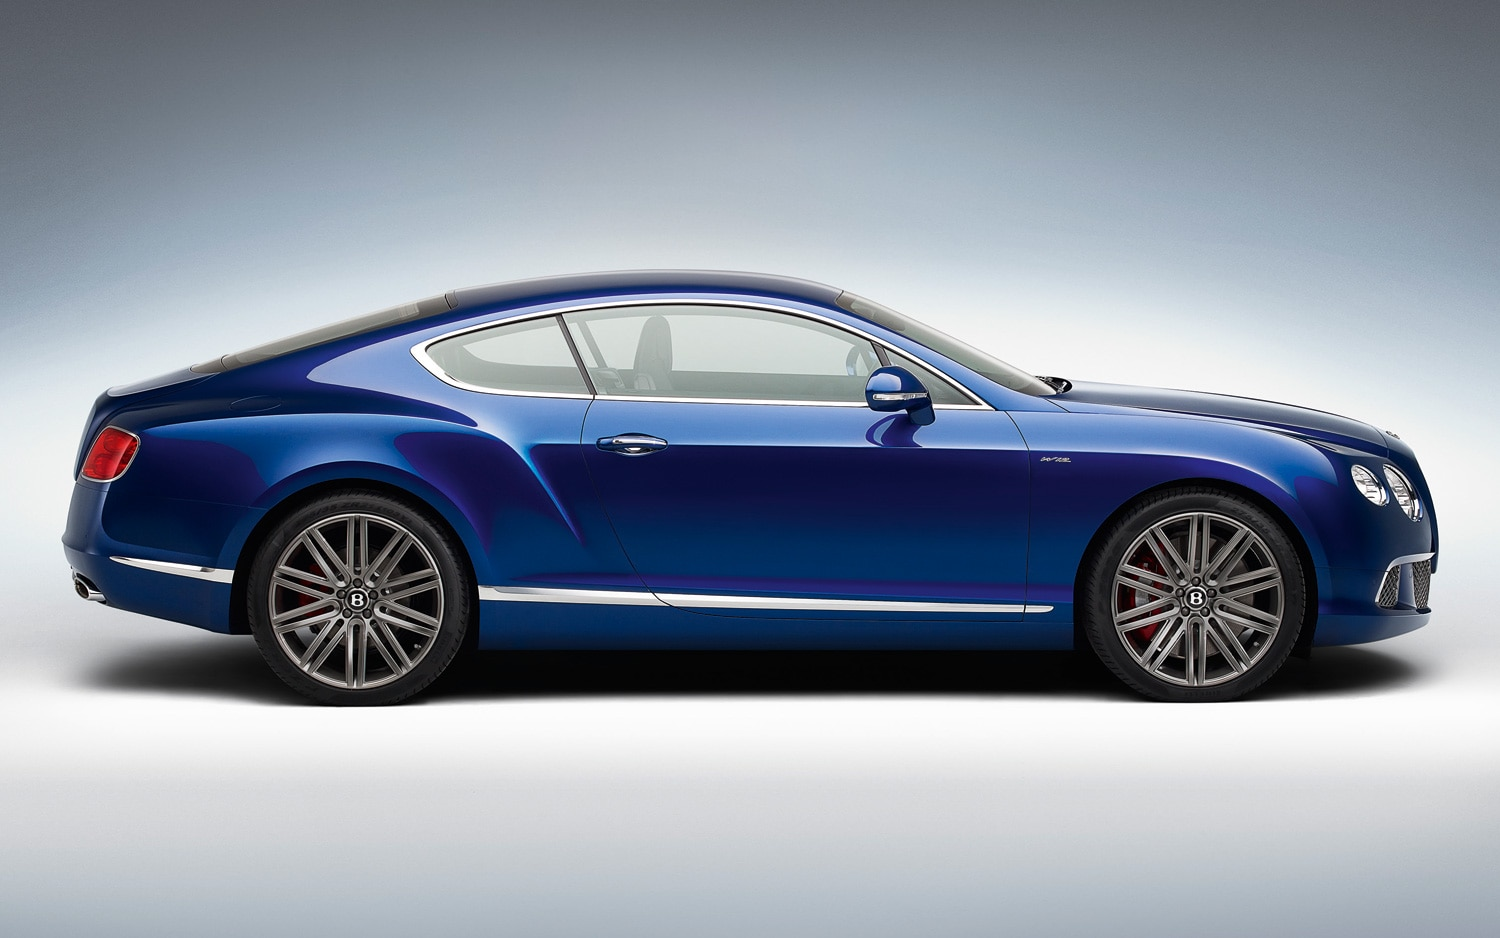 2013 Bentley Continental GT Speed Profile1